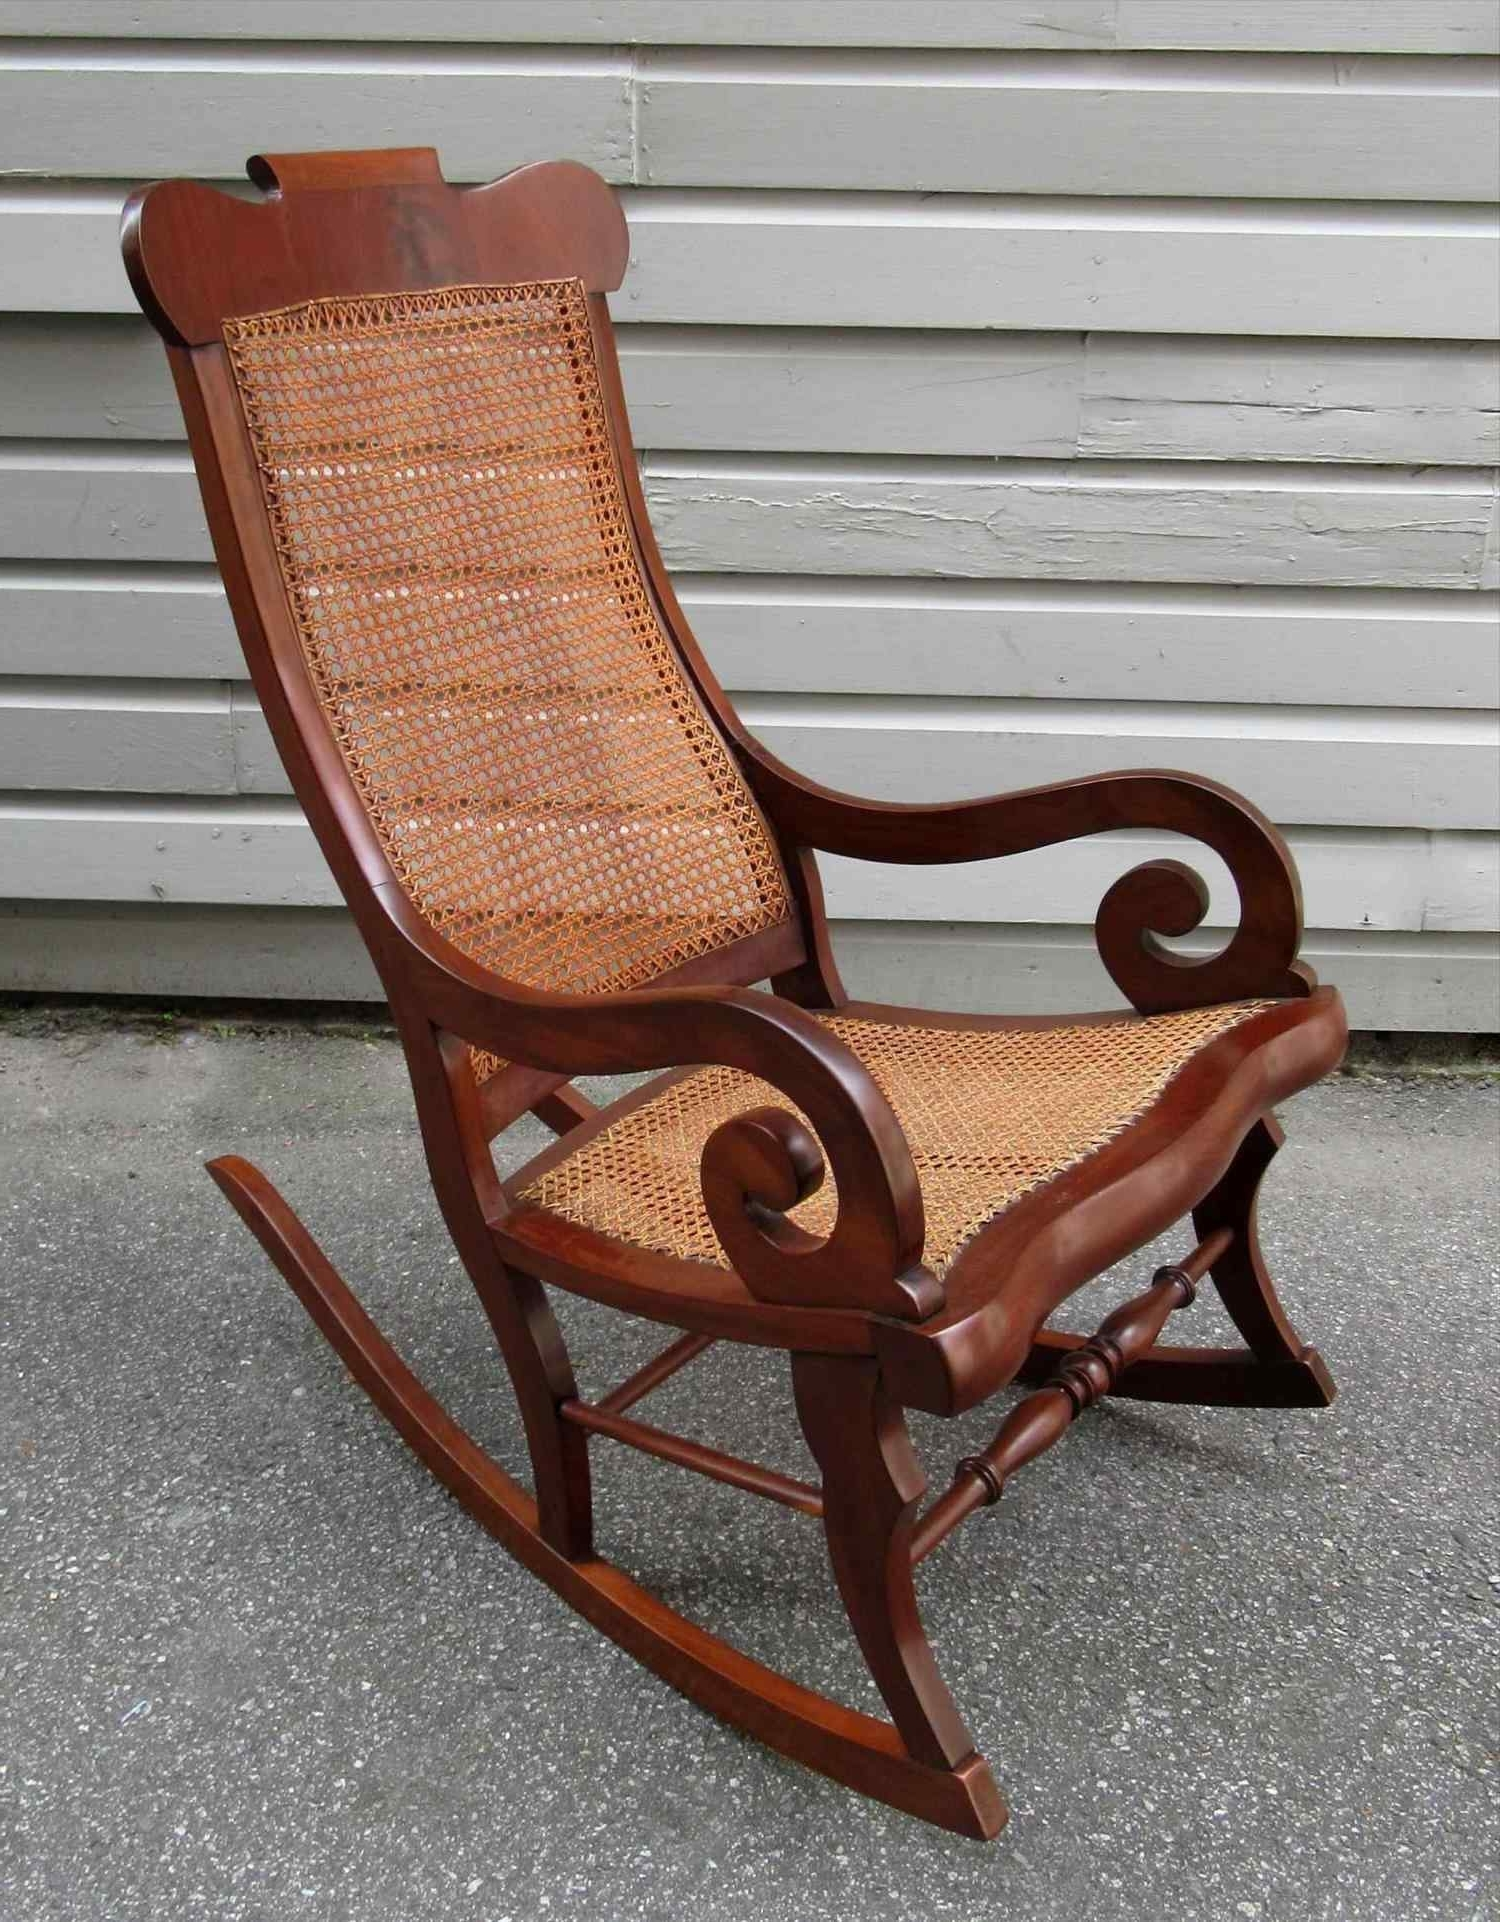 Antique Cane Rocking Chair For Sale – Image Antique And Candle Intended For Most Recent Antique Wicker Rocking Chairs (Gallery 8 of 20)